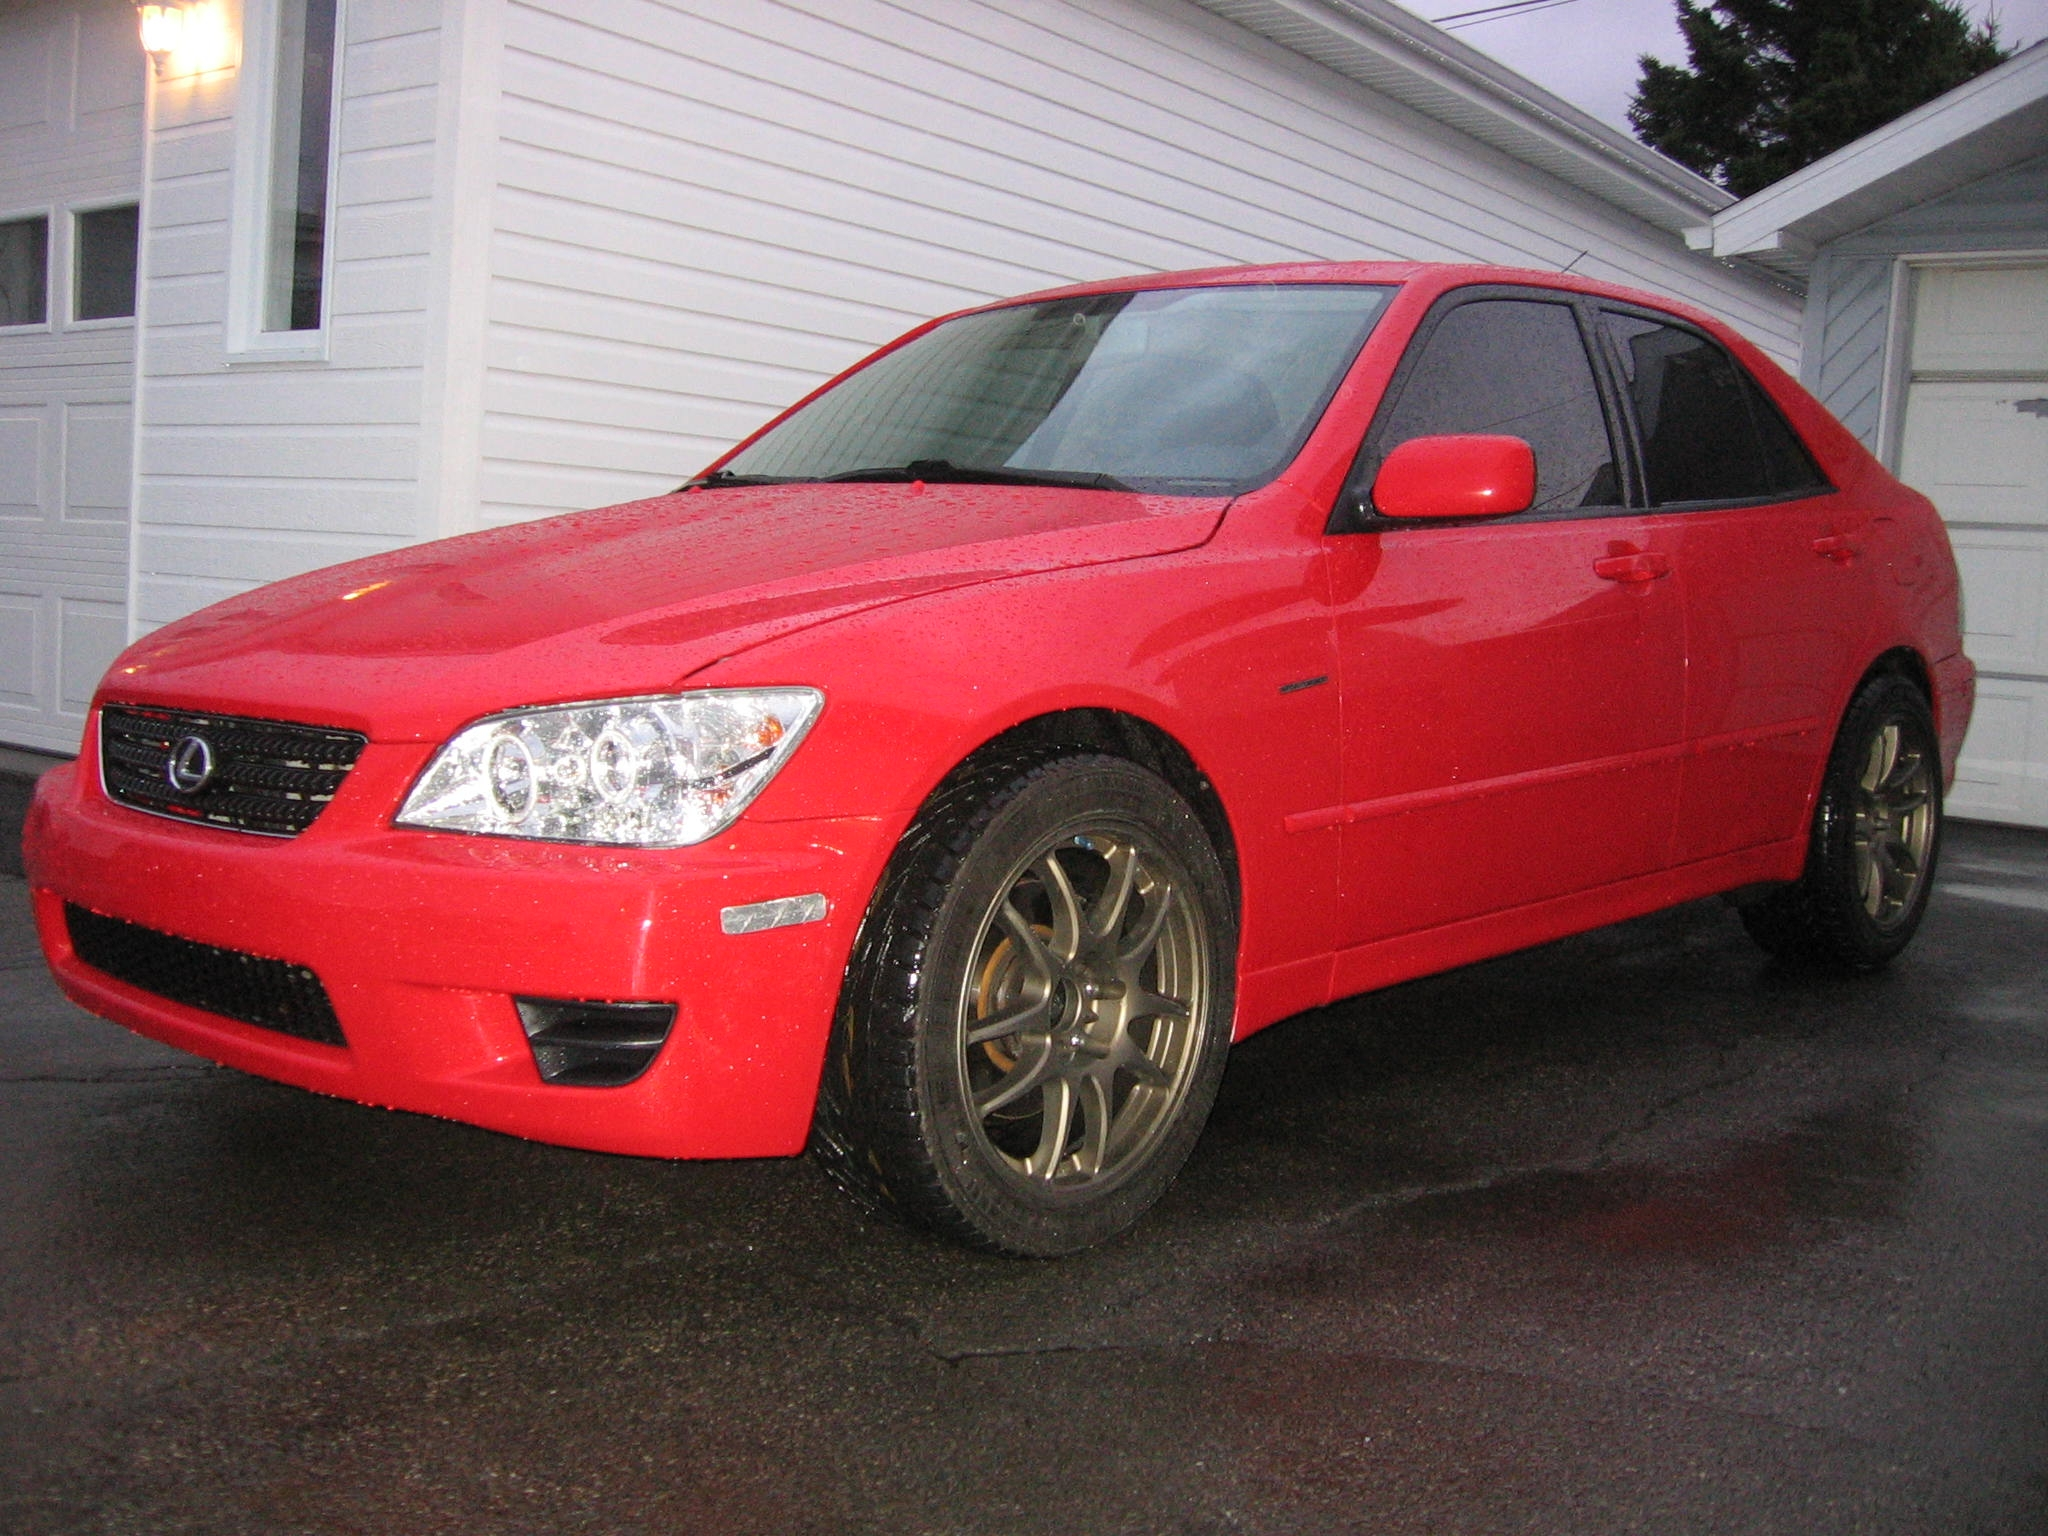 Supratruck7mgte 2003 Lexus IS Specs s Modification Info at